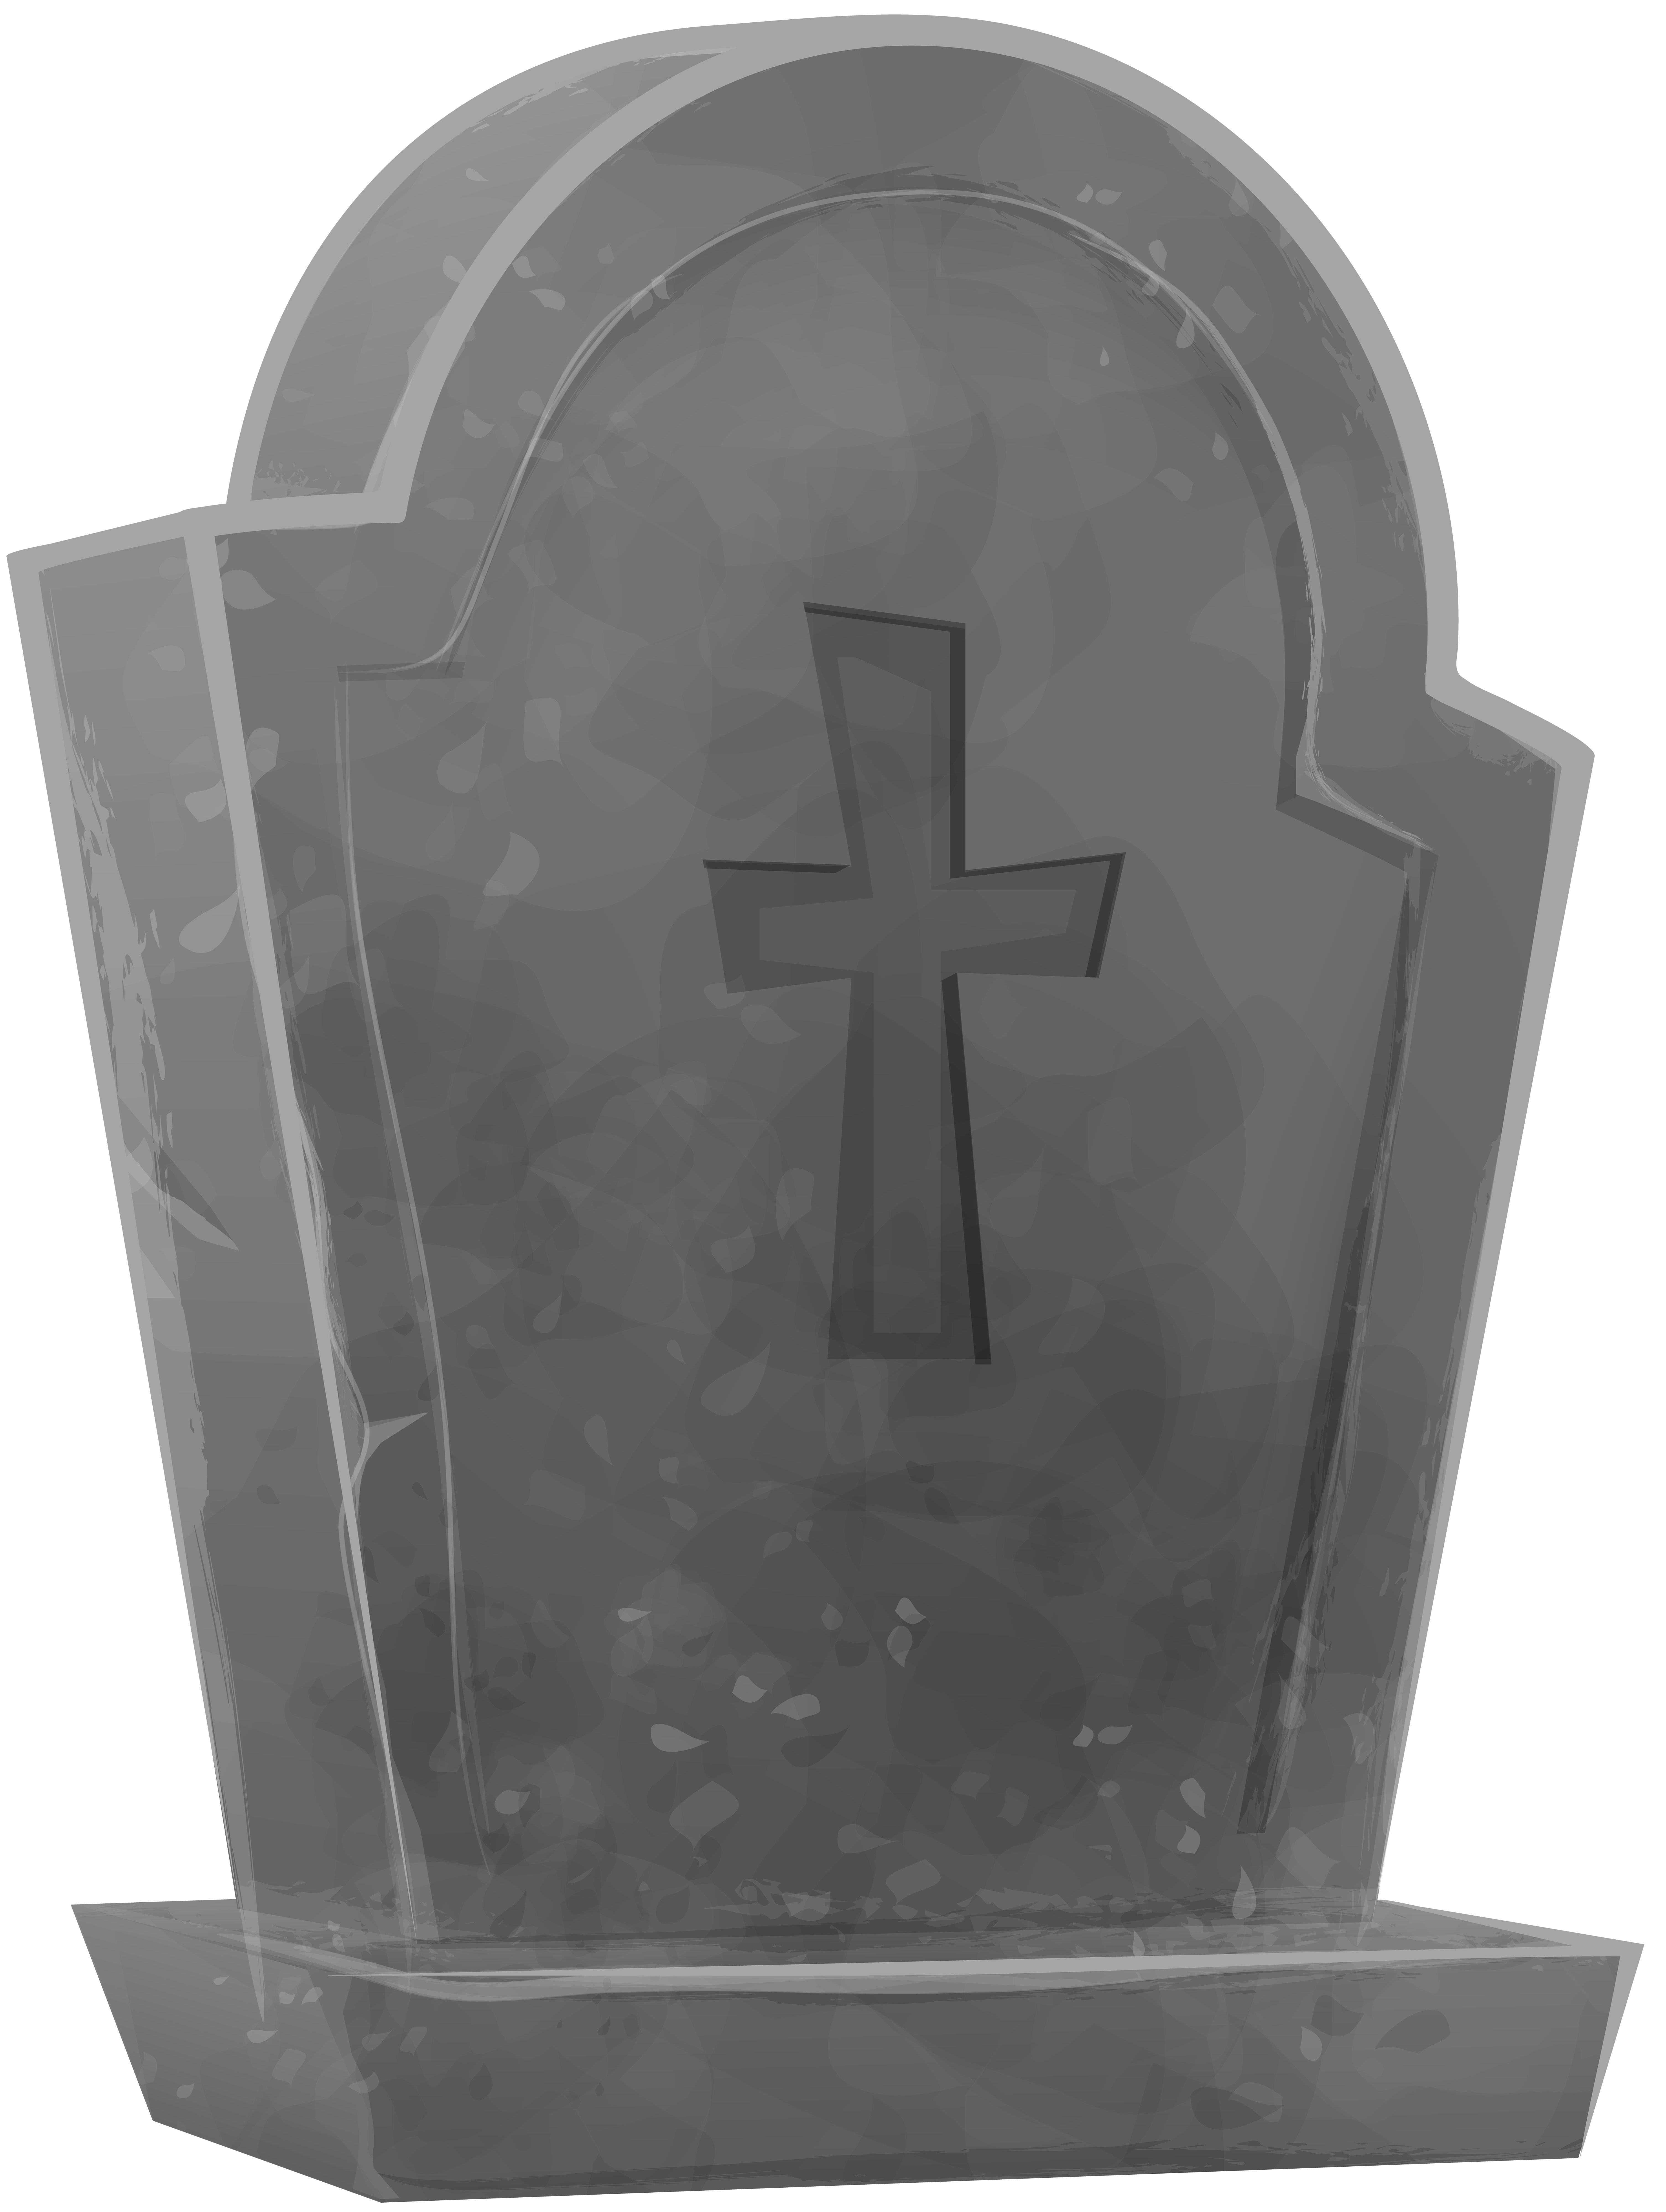 Halloween tombstone silhouette clipart graphic freeuse library Halloween RIP Tombstone PNG Clip Art Image | Gallery Yopriceville ... graphic freeuse library